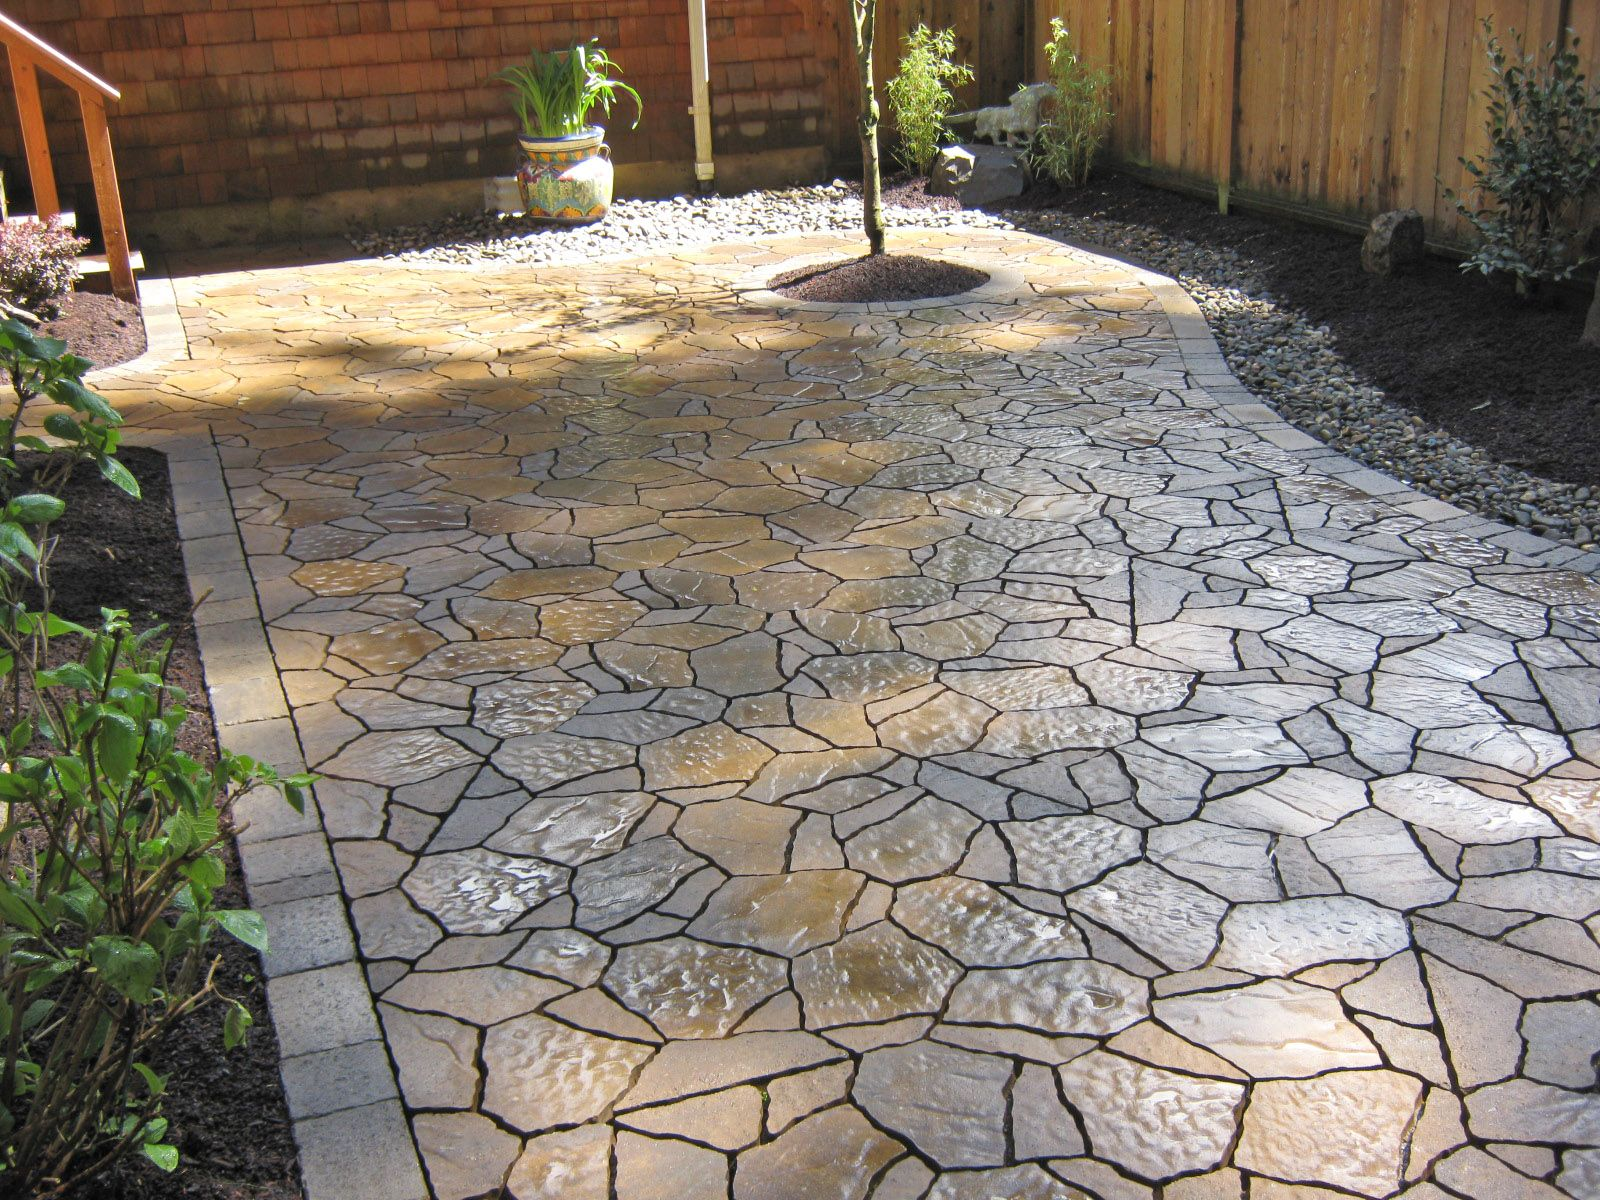 Stone patio ideas landscape archives dennis 39 7 dees for Different patio designs